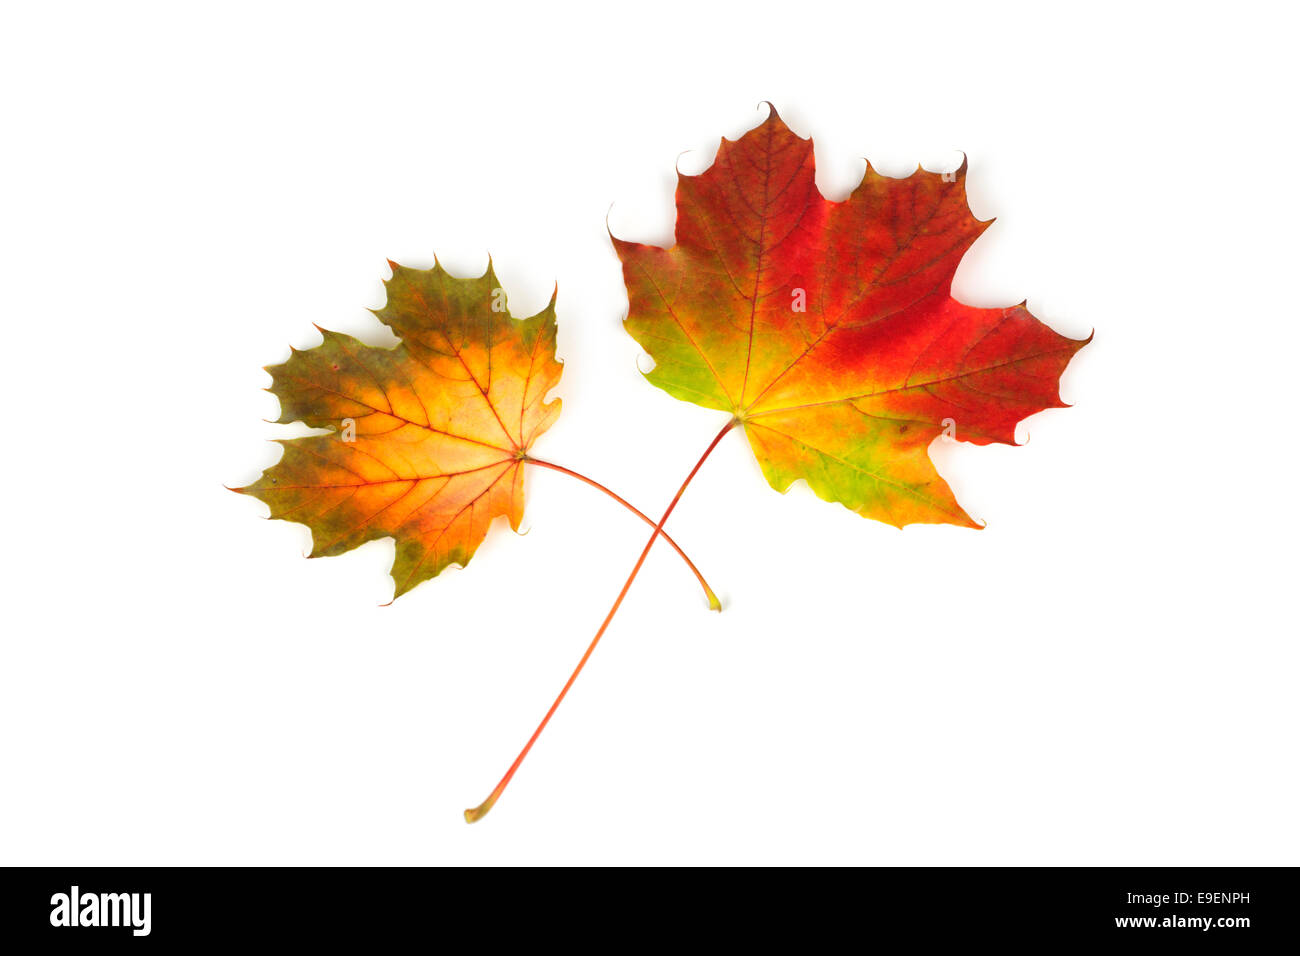 Maple Leaf Leaves Fall Autumn Colors Colours - Stock Image